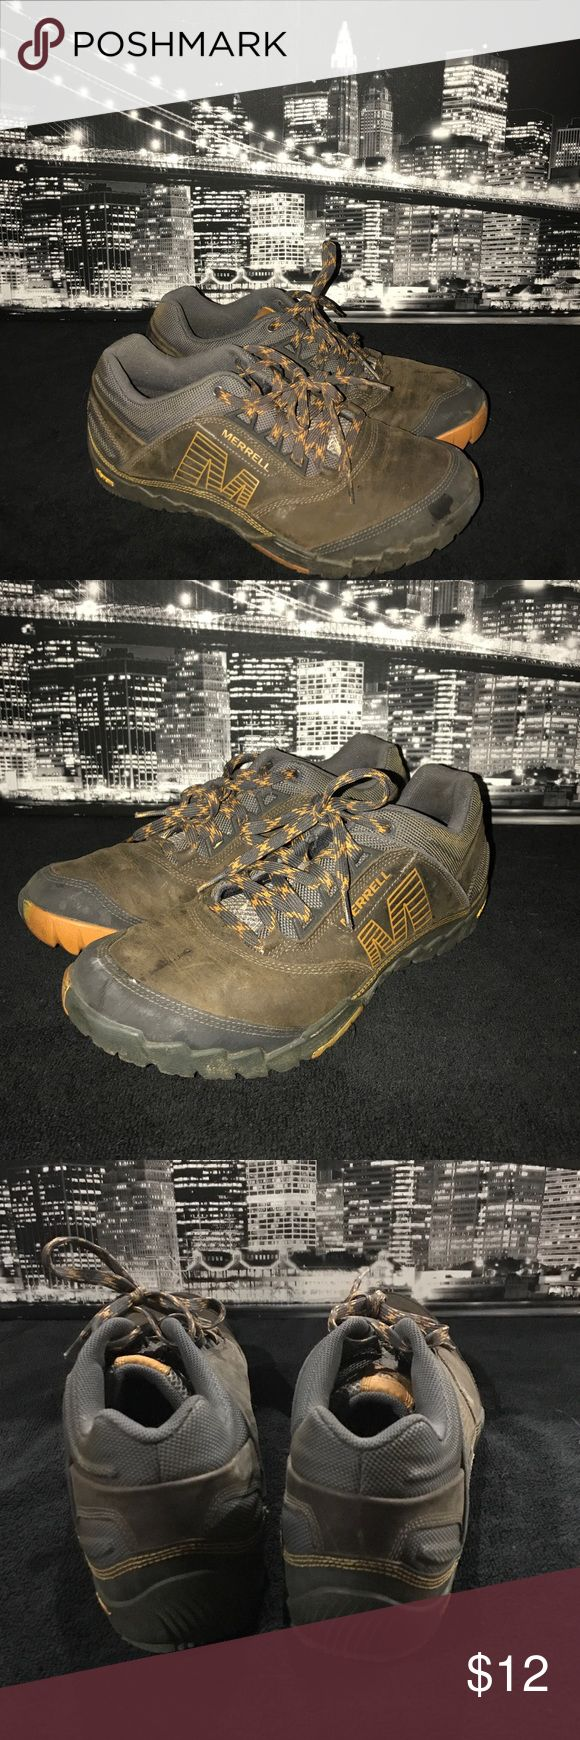 Super snazzy Merrill shoes 12 us 11.5 U.K. Have a night out on the town with these amazing shoes. Have fun and enjoy. Merrell Shoes Sneakers